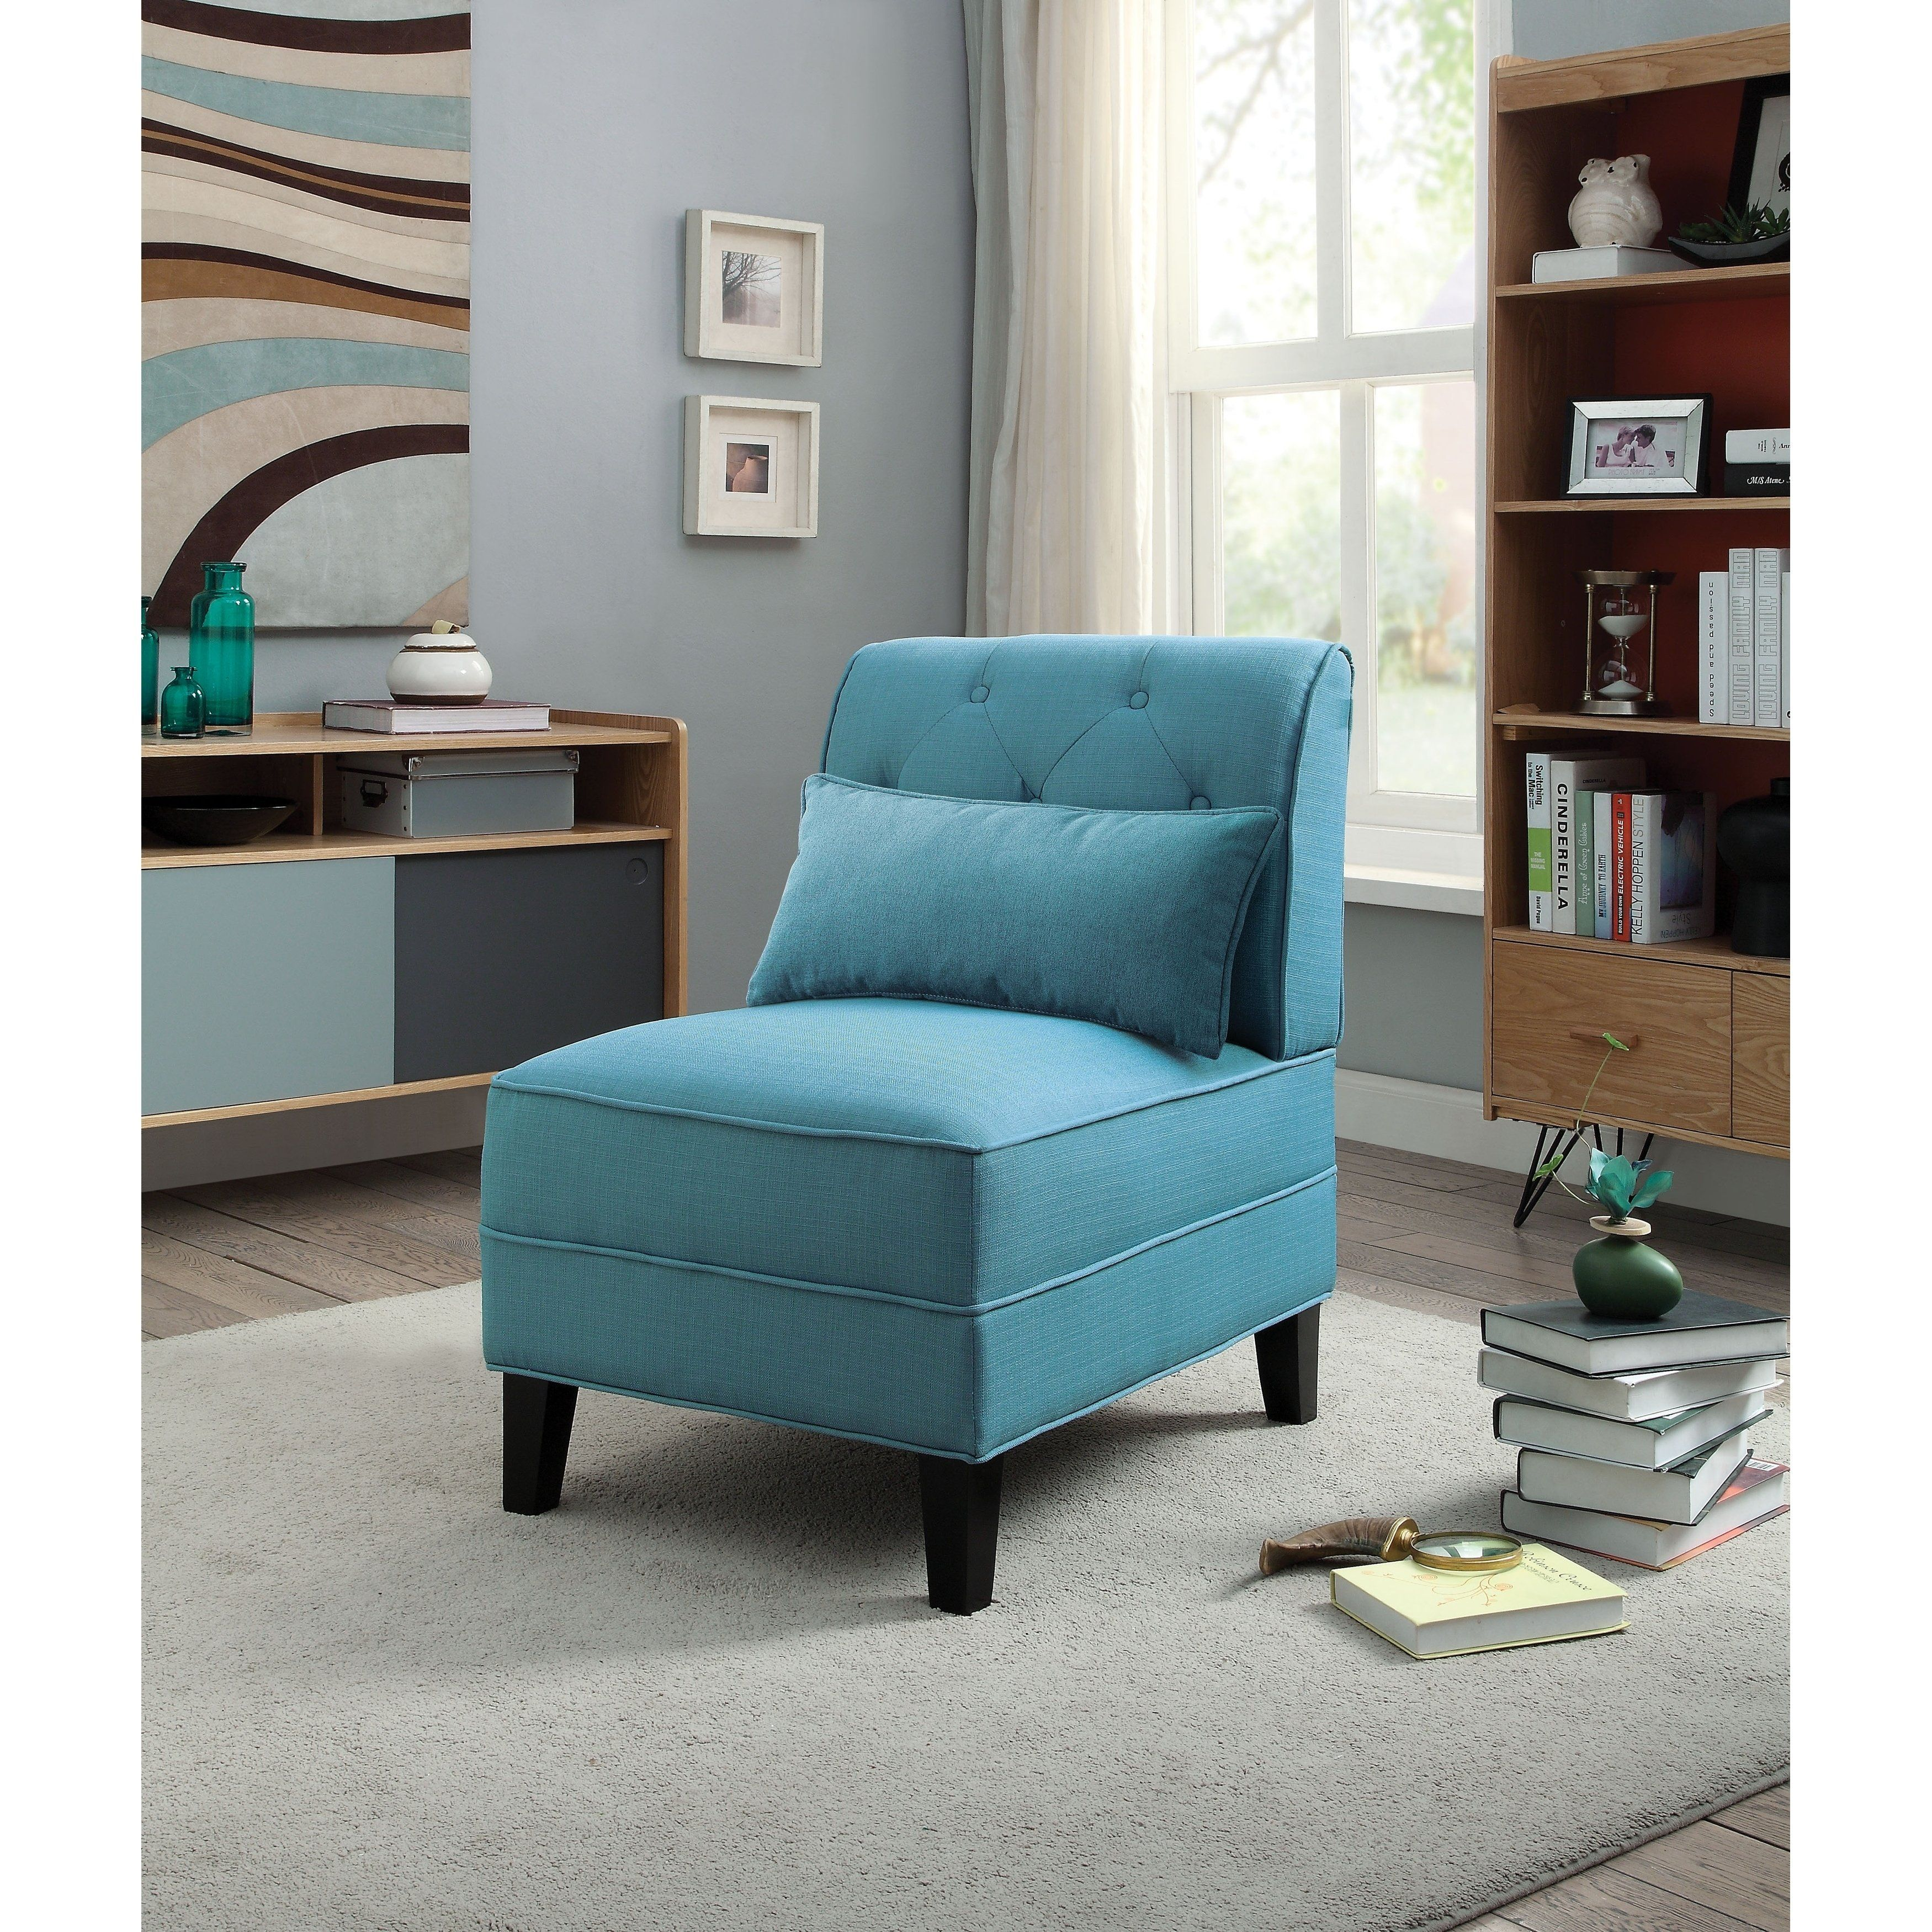 Best Riccio Slipper Chair Baby Blue Upholstered In 2019 400 x 300